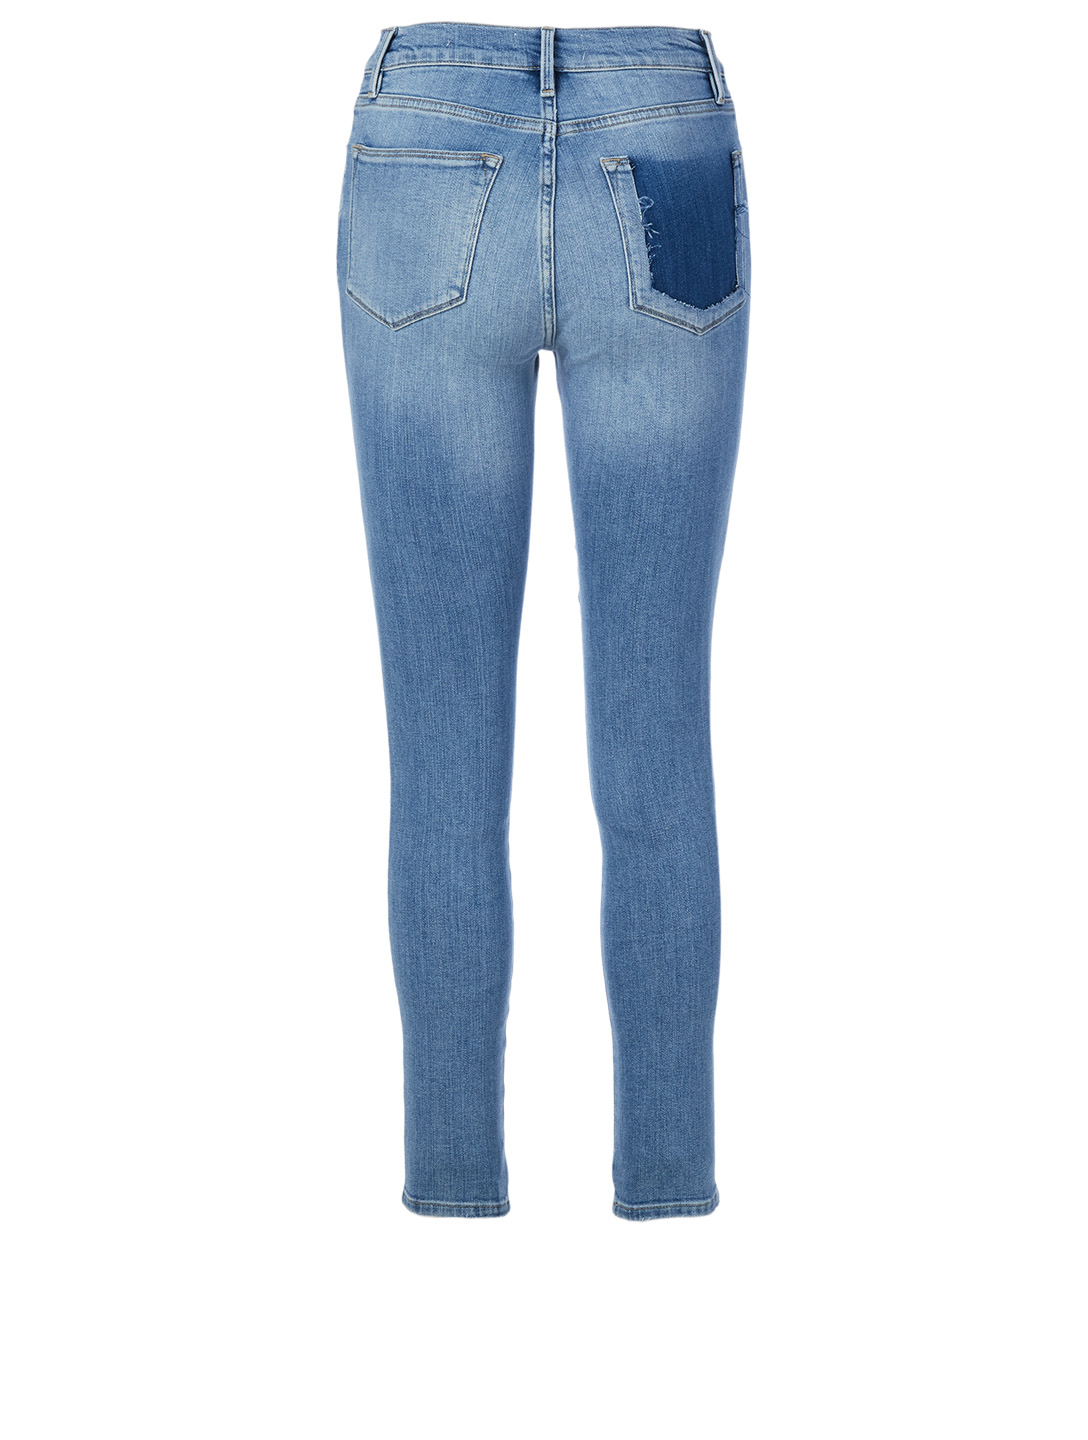 FRAME Le High Skinny Double Needle Jeans Women's Blue